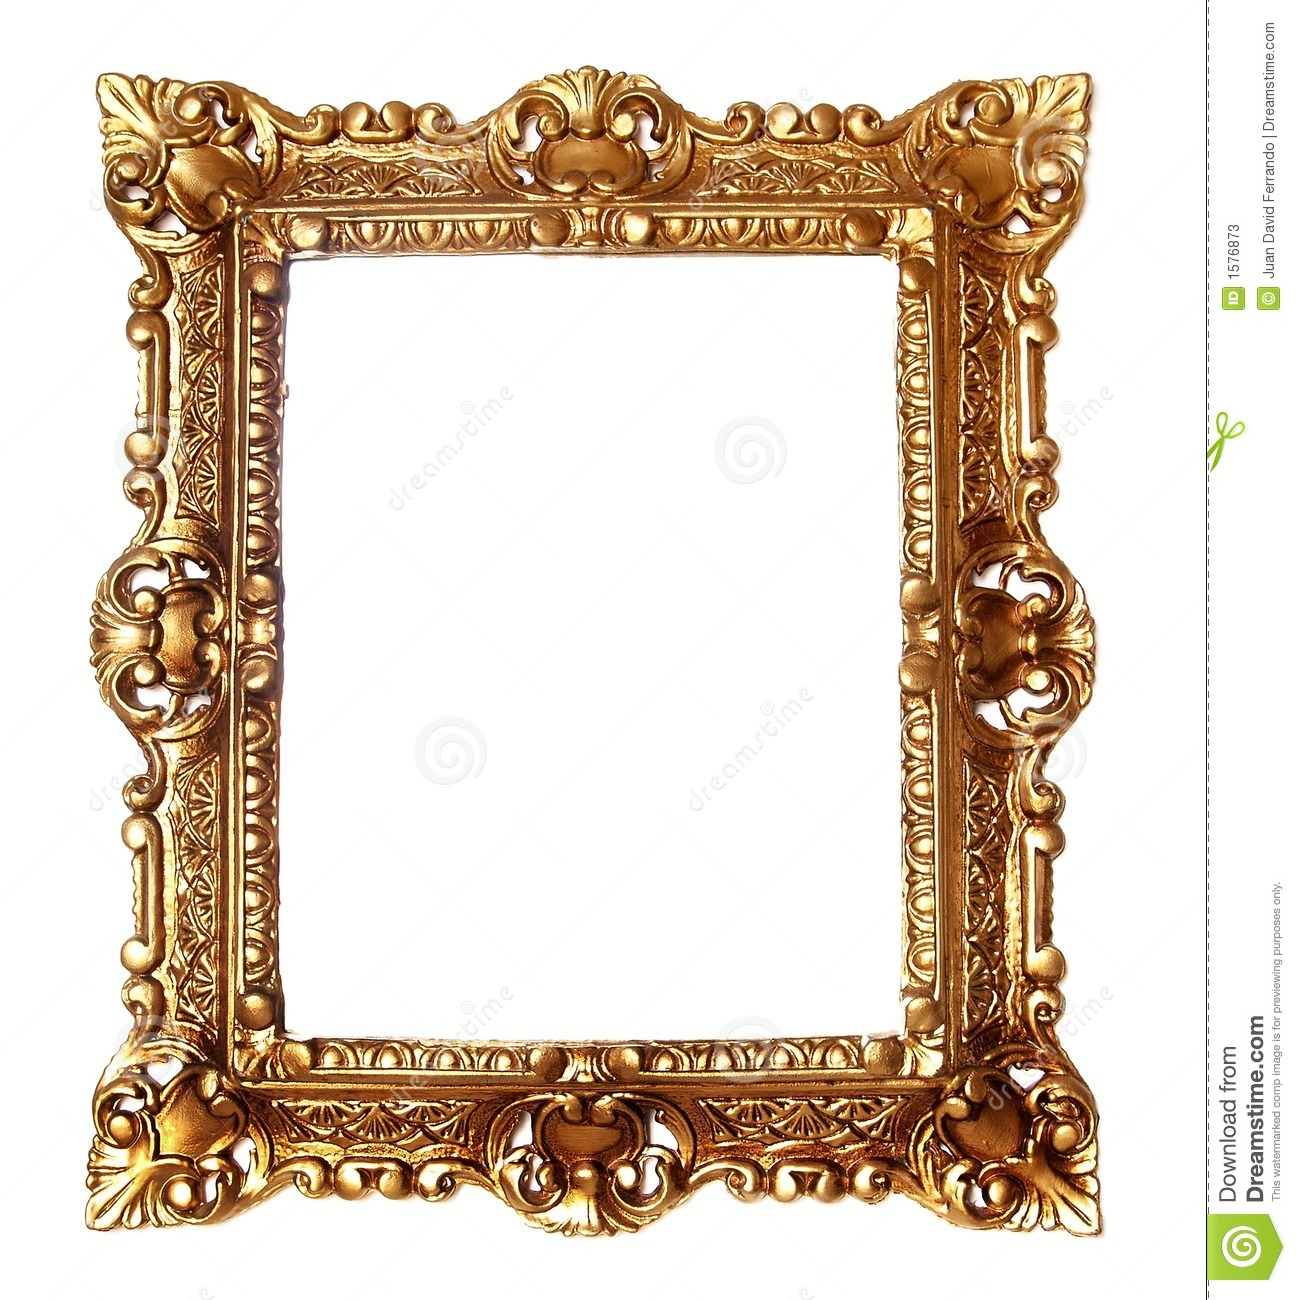 Antique Golden Frame Stock Photos - Image: 1576873